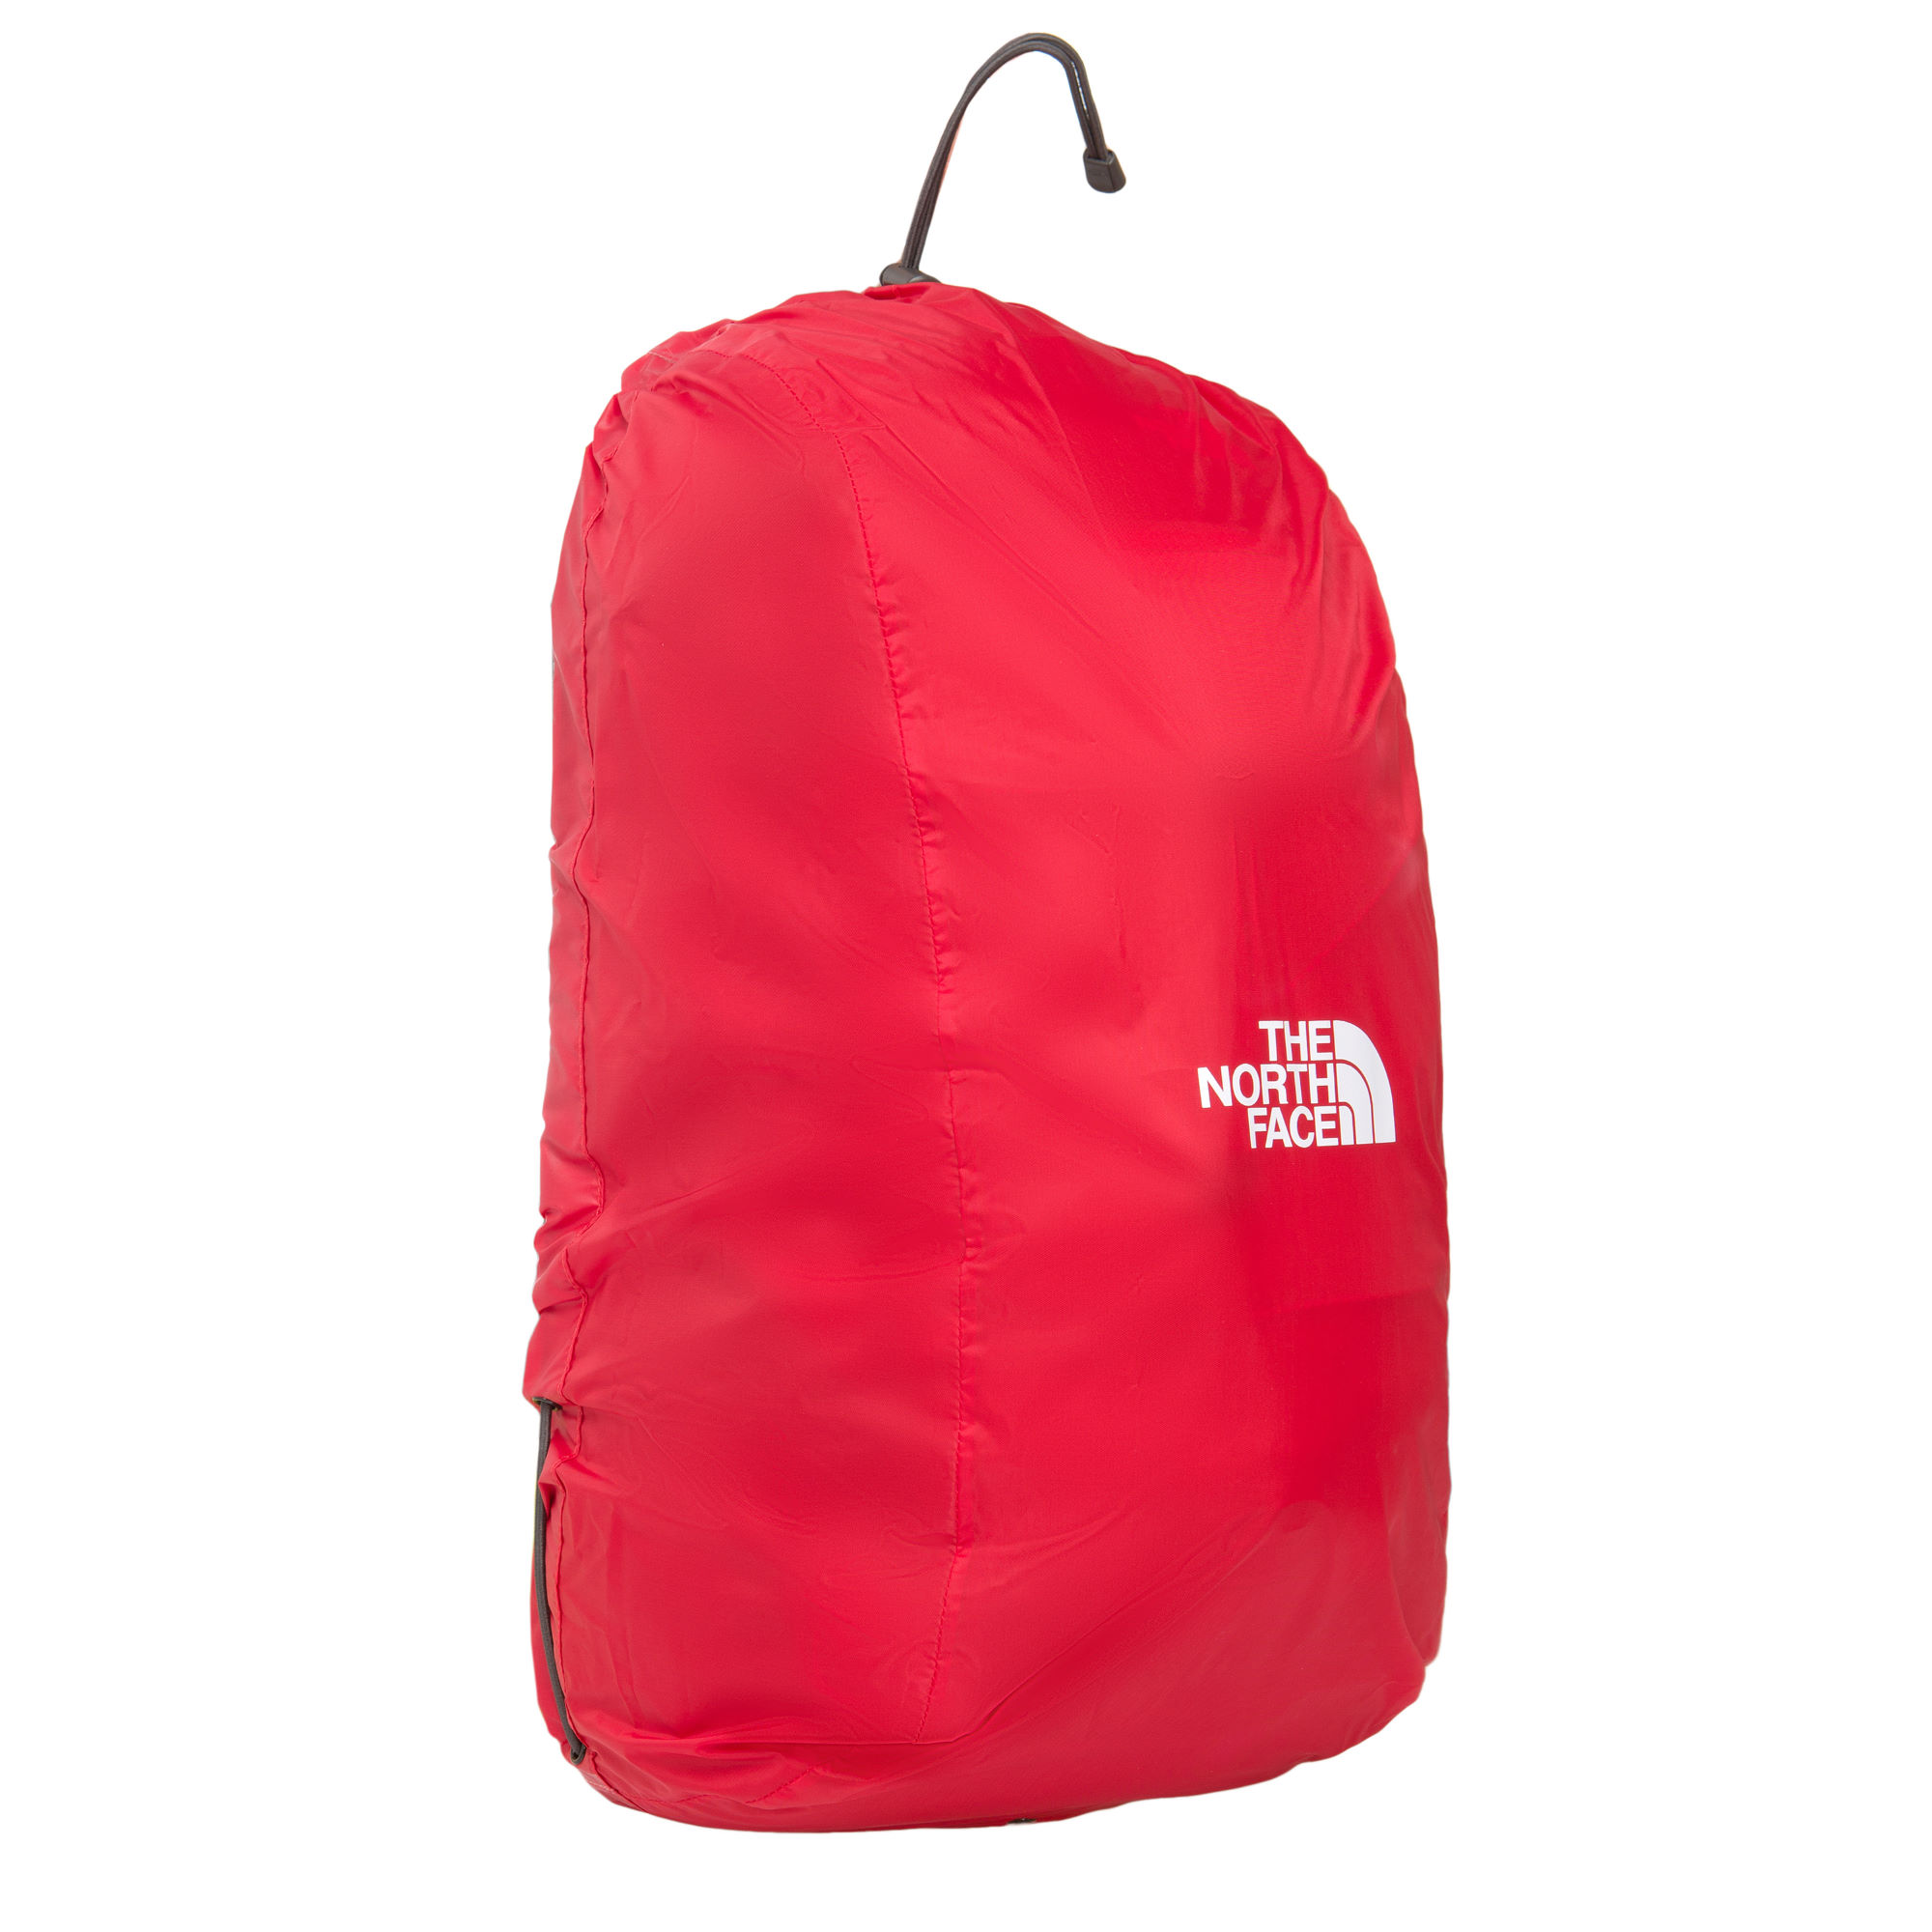 North Face Backpack Rain Cover Home The North Face Pack Rain